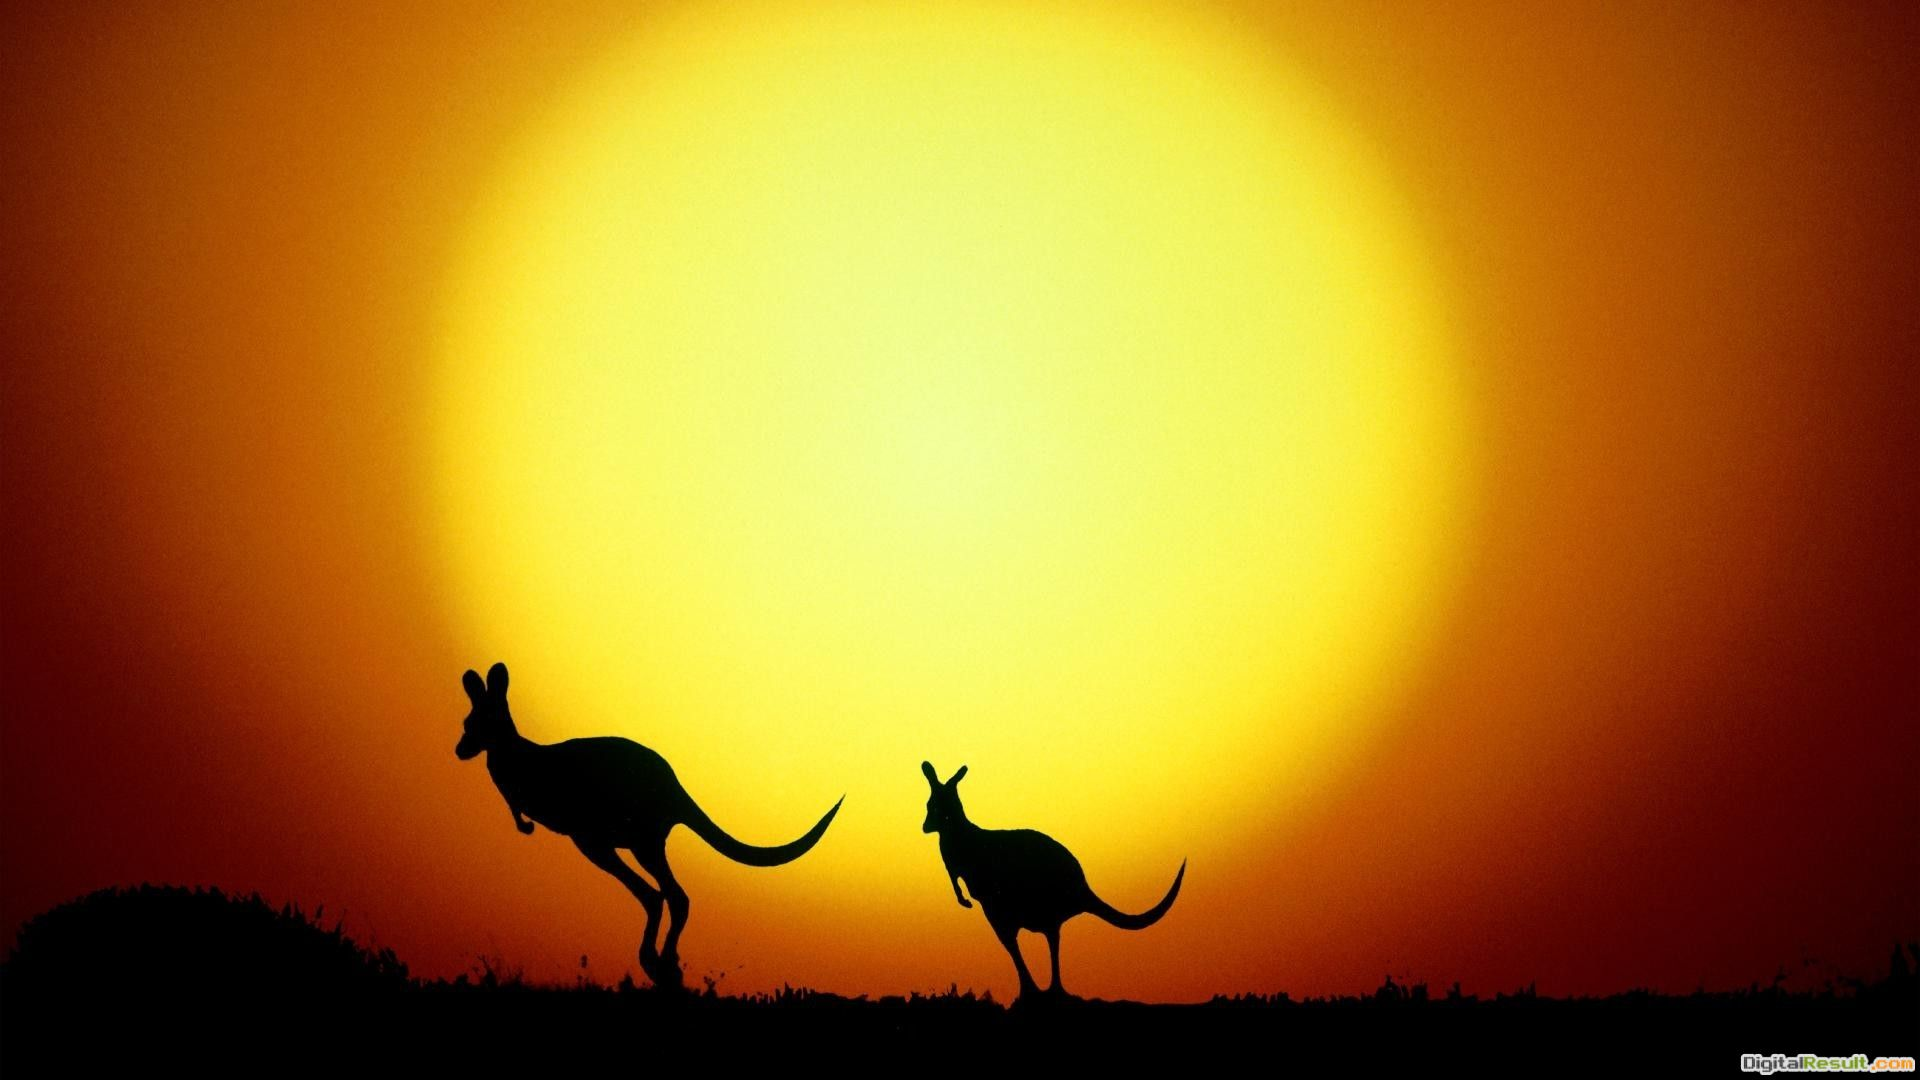 download kangaroo sunset jumping pictures hd wallpaper Car Pictures 572